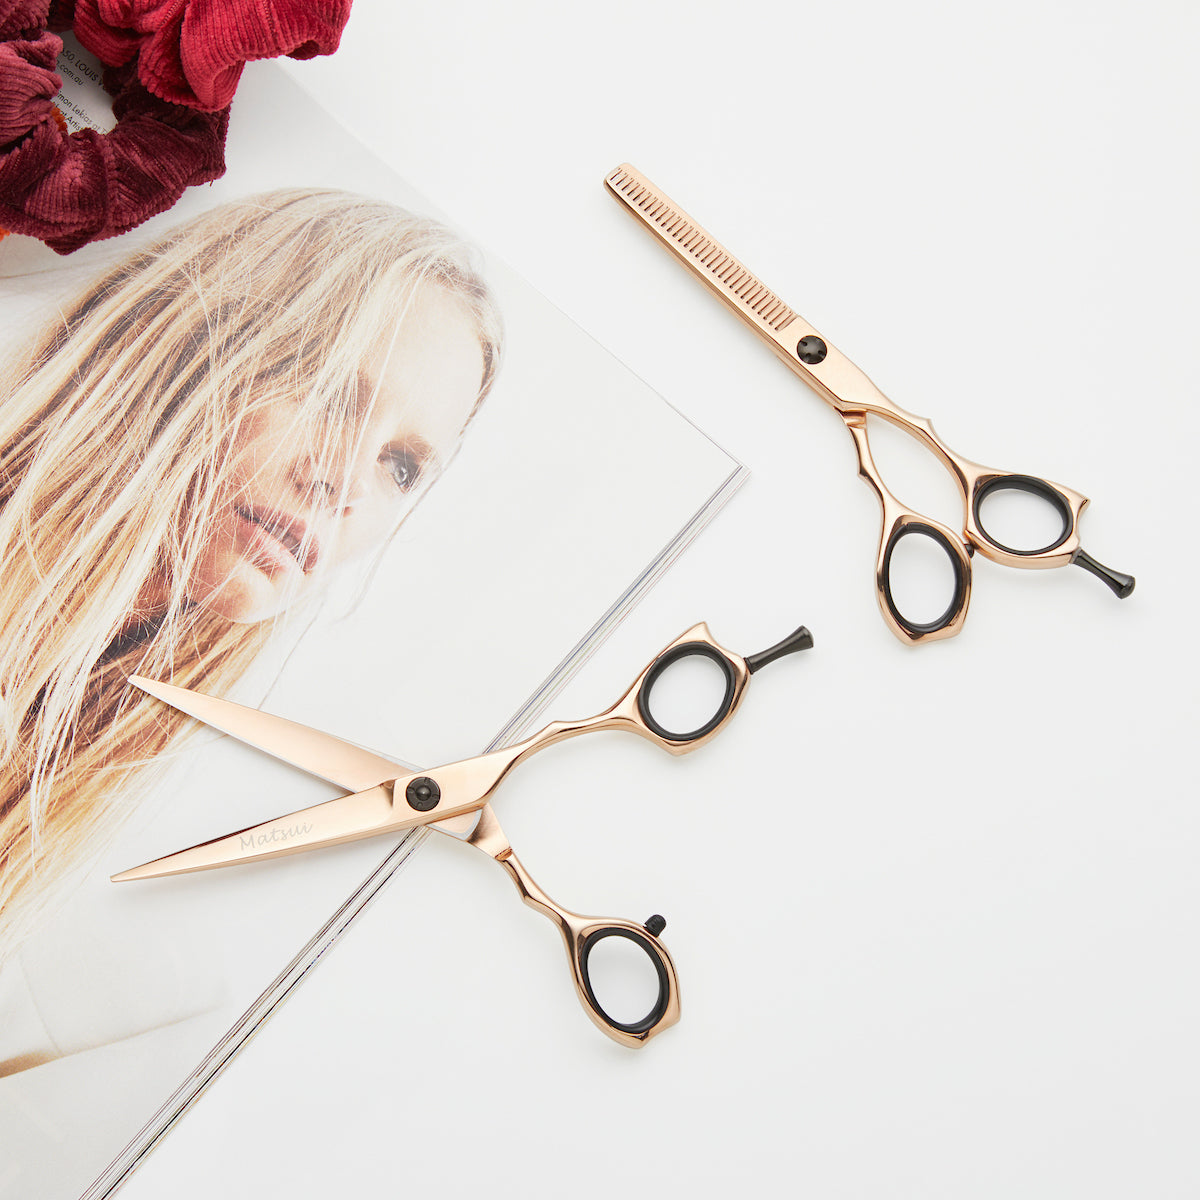 best apprentice hairdressing scissors